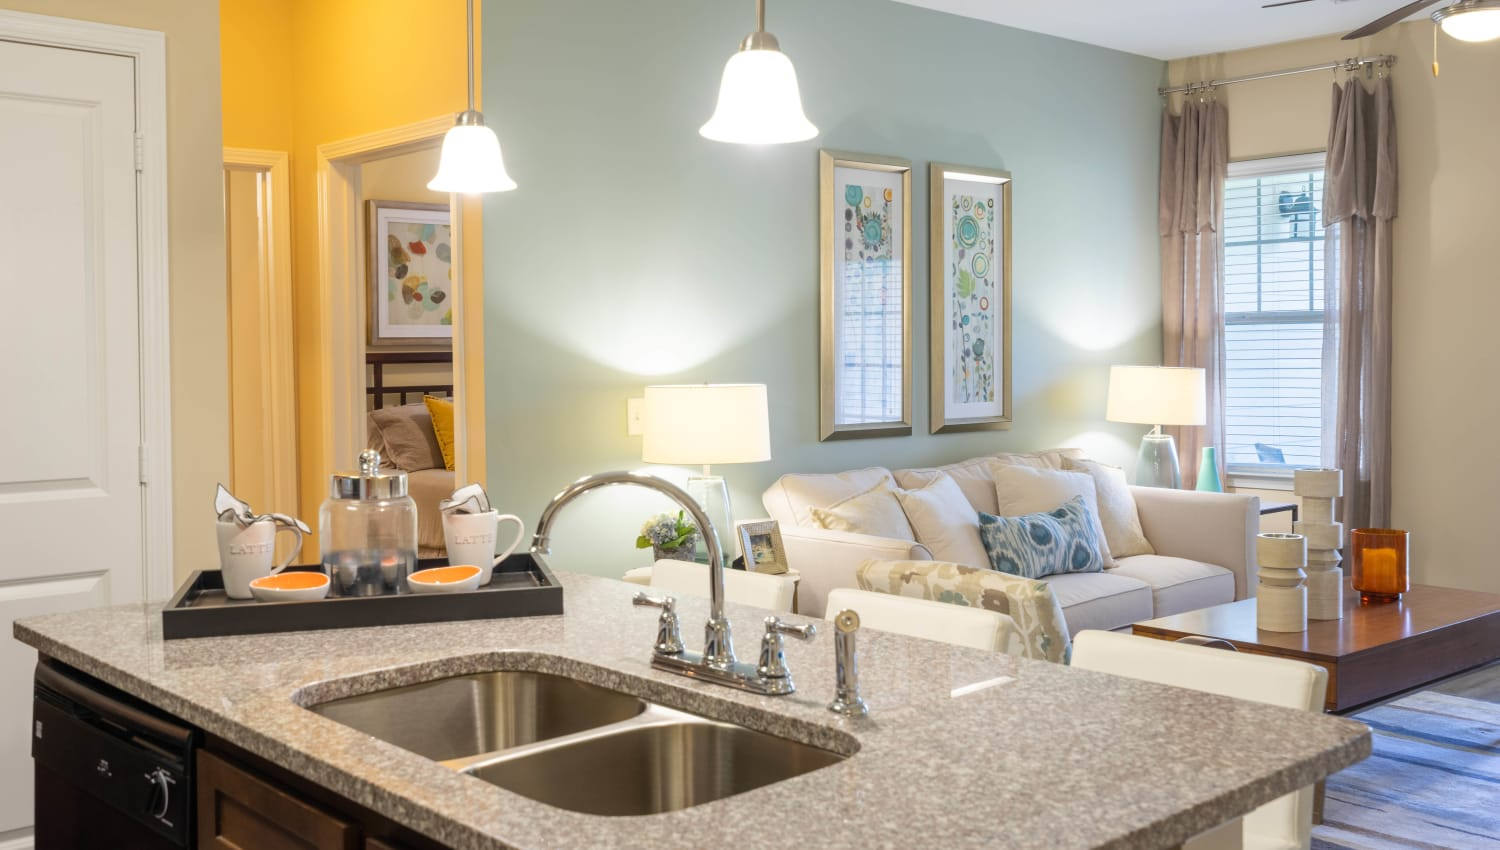 Granite countertop on the island in a model home's kitchen at Legends at White Oak in Ooltewah, Tennessee